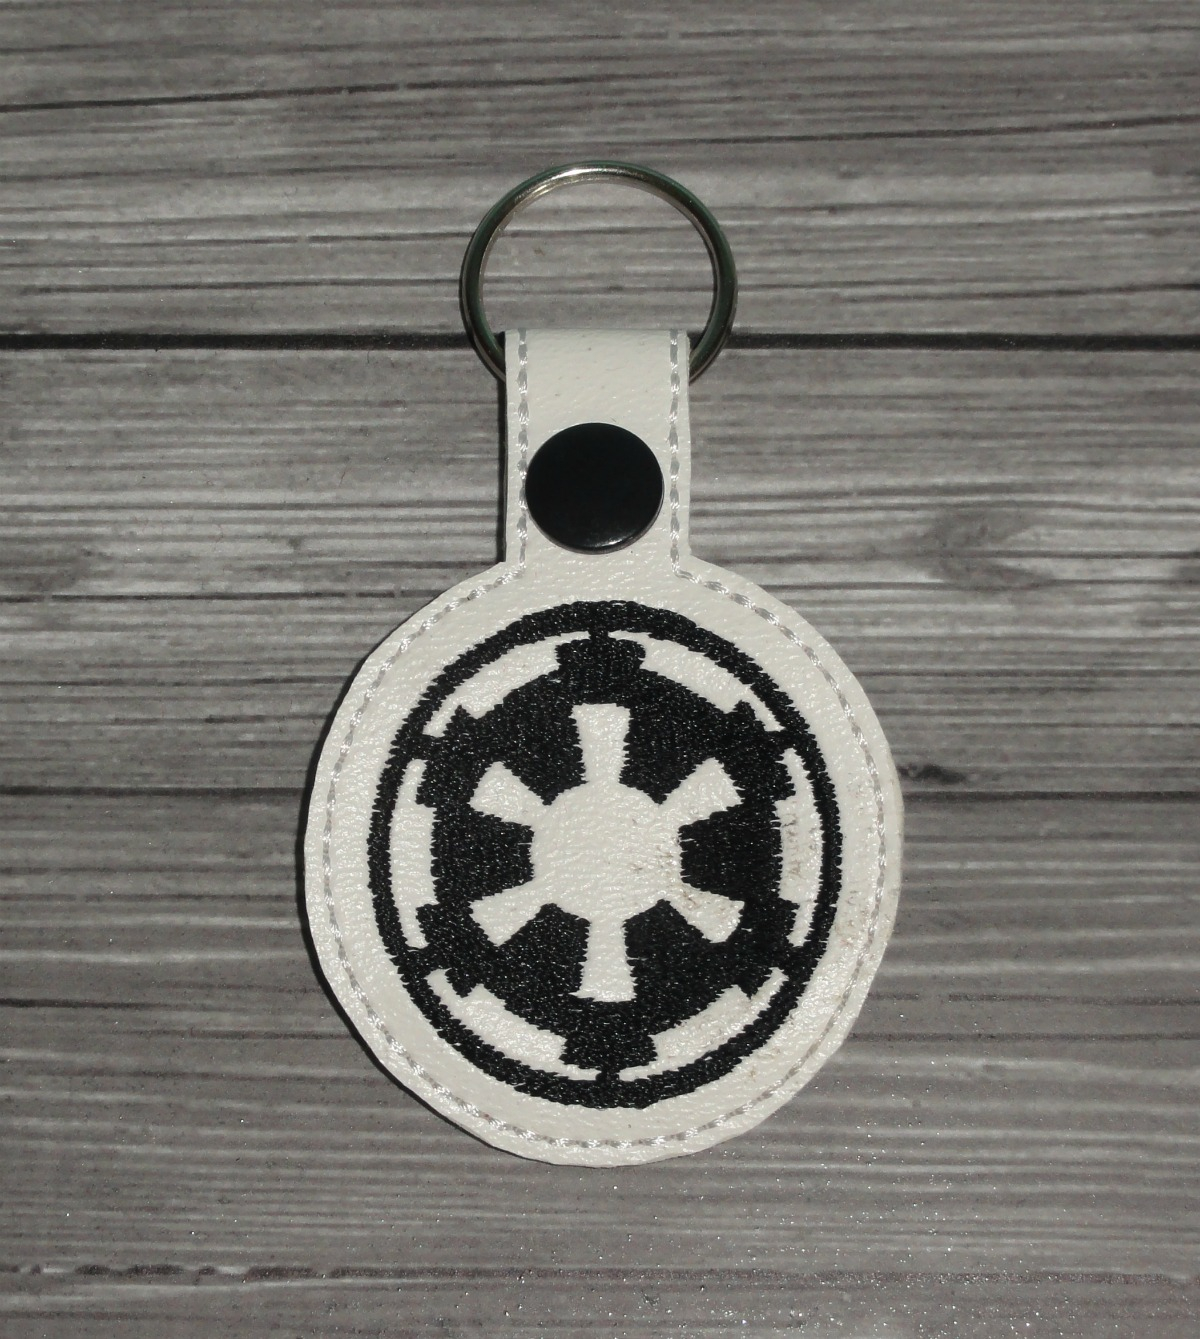 Star Wars Embroidery Pattern Star Wars Imperial Keychain Ith Embroidery Design